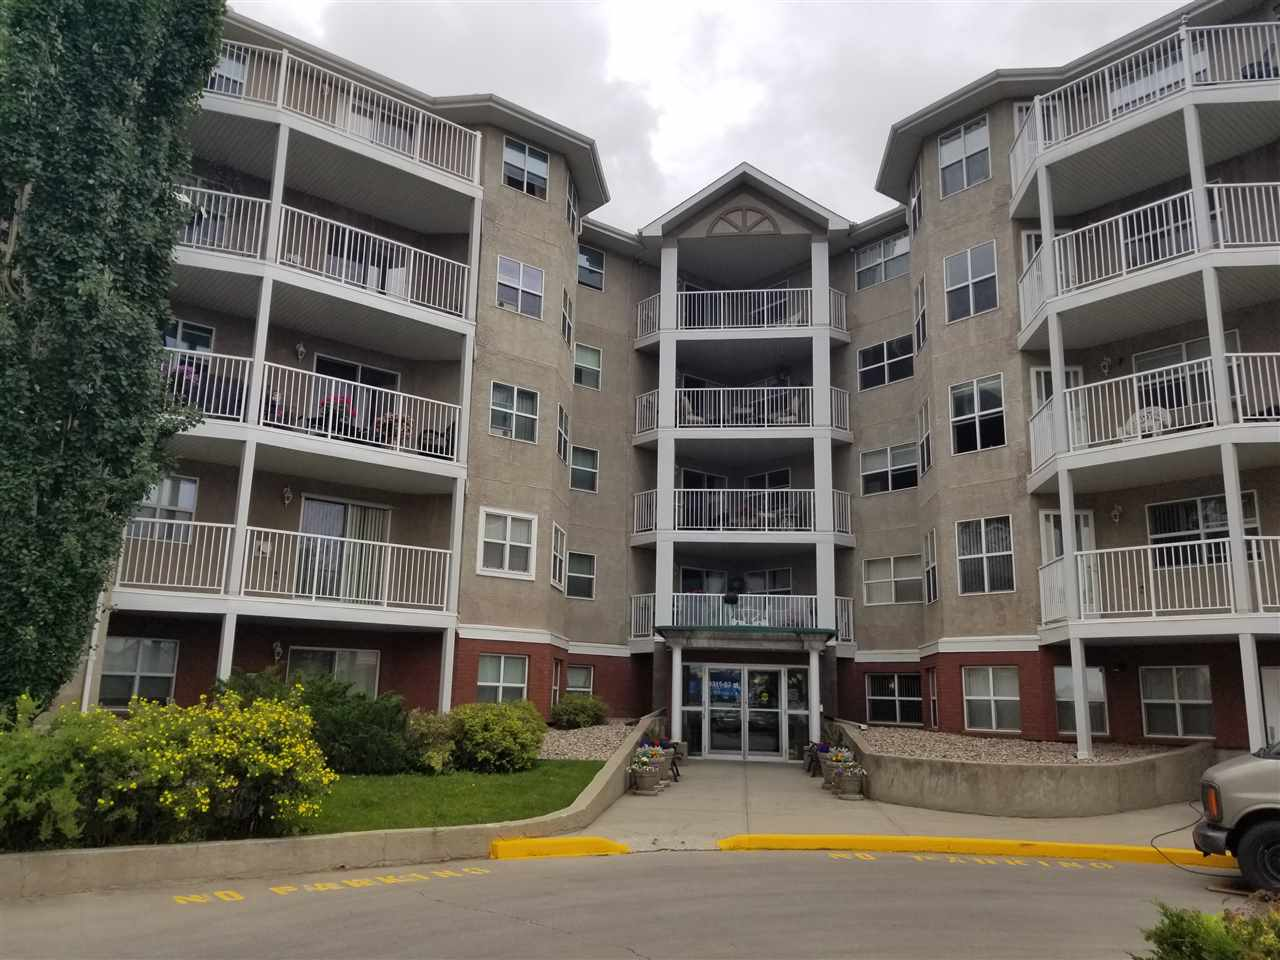 Location, Location, Location! Located across from Bonnie Doon Mall, this top floor unit in 50+ age restricted condominium has it all! The unit features open concept living, large kitchen with plenty of cupboards and counter tops, gas fireplace in living room, south facing balcony (new railings and floor membrane), 2 spacious bedrooms, master bedroom having walk through closet with organizers and 3 piece bath in- suite laundry and large storage room. Freshly paint, newer flooring (about 5 yrs old) and newer appliances (about 5 years old). Titled, secured and heated underground parking (one stall), with extra storage in front. Melrose Court has fantastic amenities including social/ party room with gas fireplace, kitchen, dining, and TV/games area, car wash in parkade and guest suite for visitors! Original owner from when unit was new, no pets, and no smoking. Close to public transit (future LRT), and easy access to main artery roads in Edmonton! Just have to move in and enjoy!